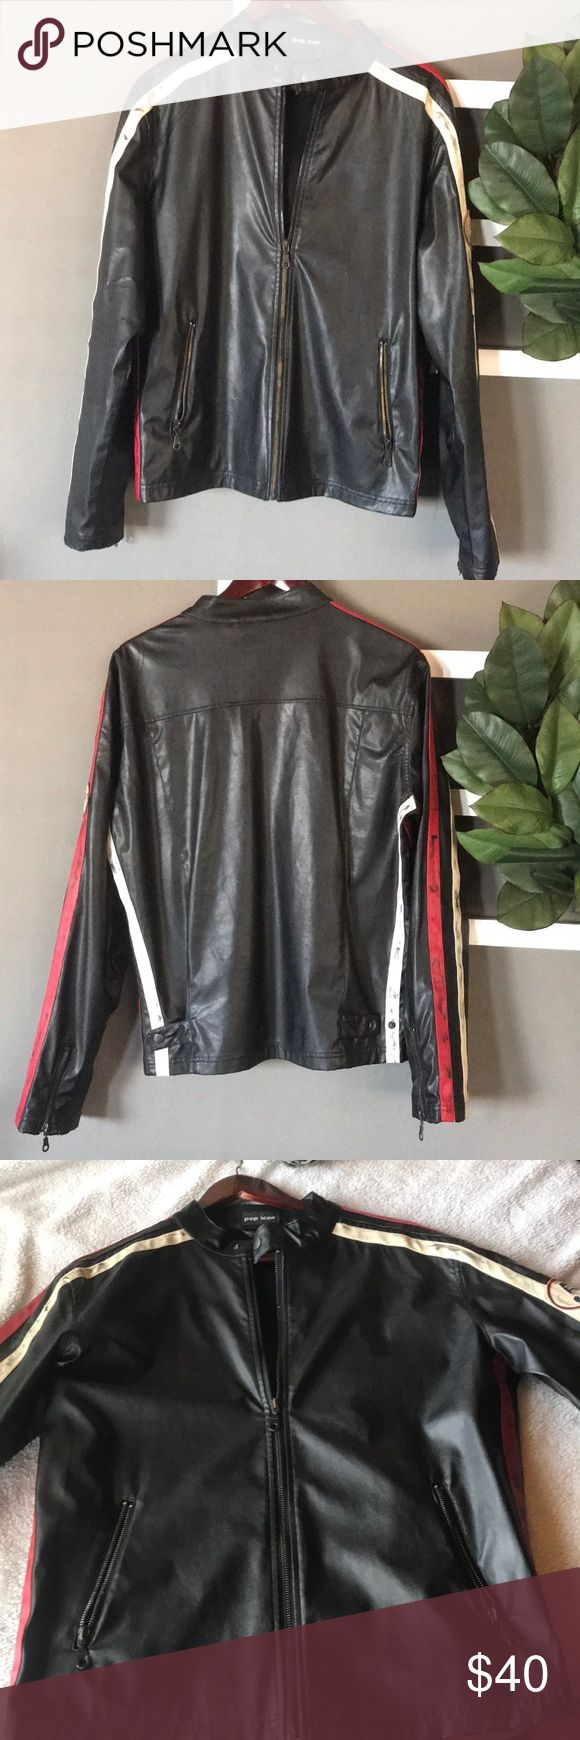 Pop Icon Motorcycle Jacket Supper cute!! Size M! Unisex. Has a crack on the back of the right arm (please see picture) has some others that I'm not so sure if they go with the design. Other than that it's still pretty cute. POP ICON CLOTHING Jackets & Coats